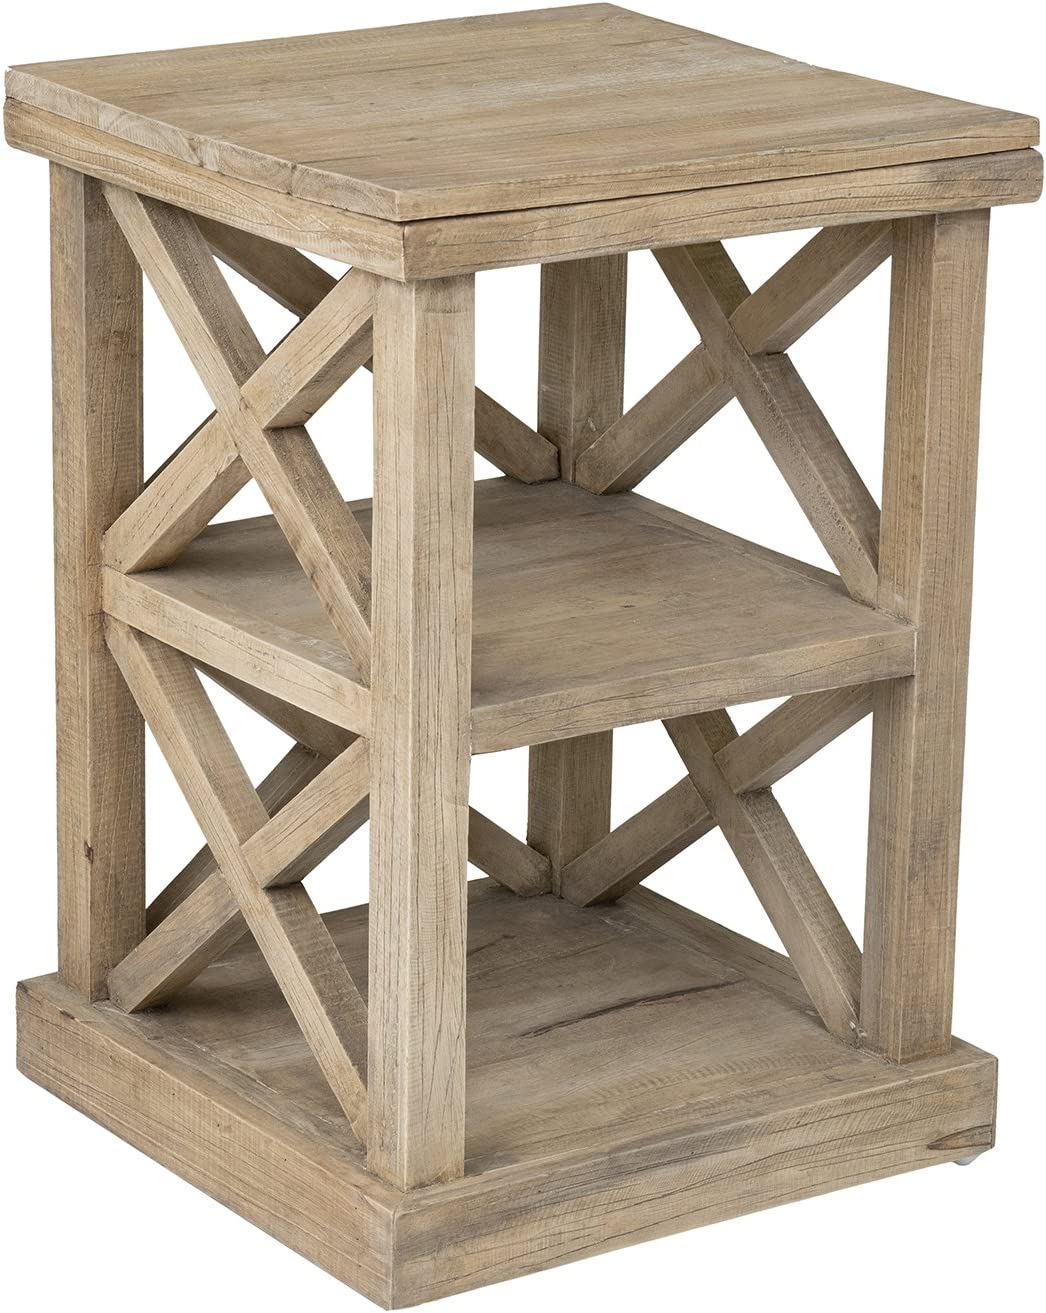 East at Main Madeline Rustic End Table, Brown, (17